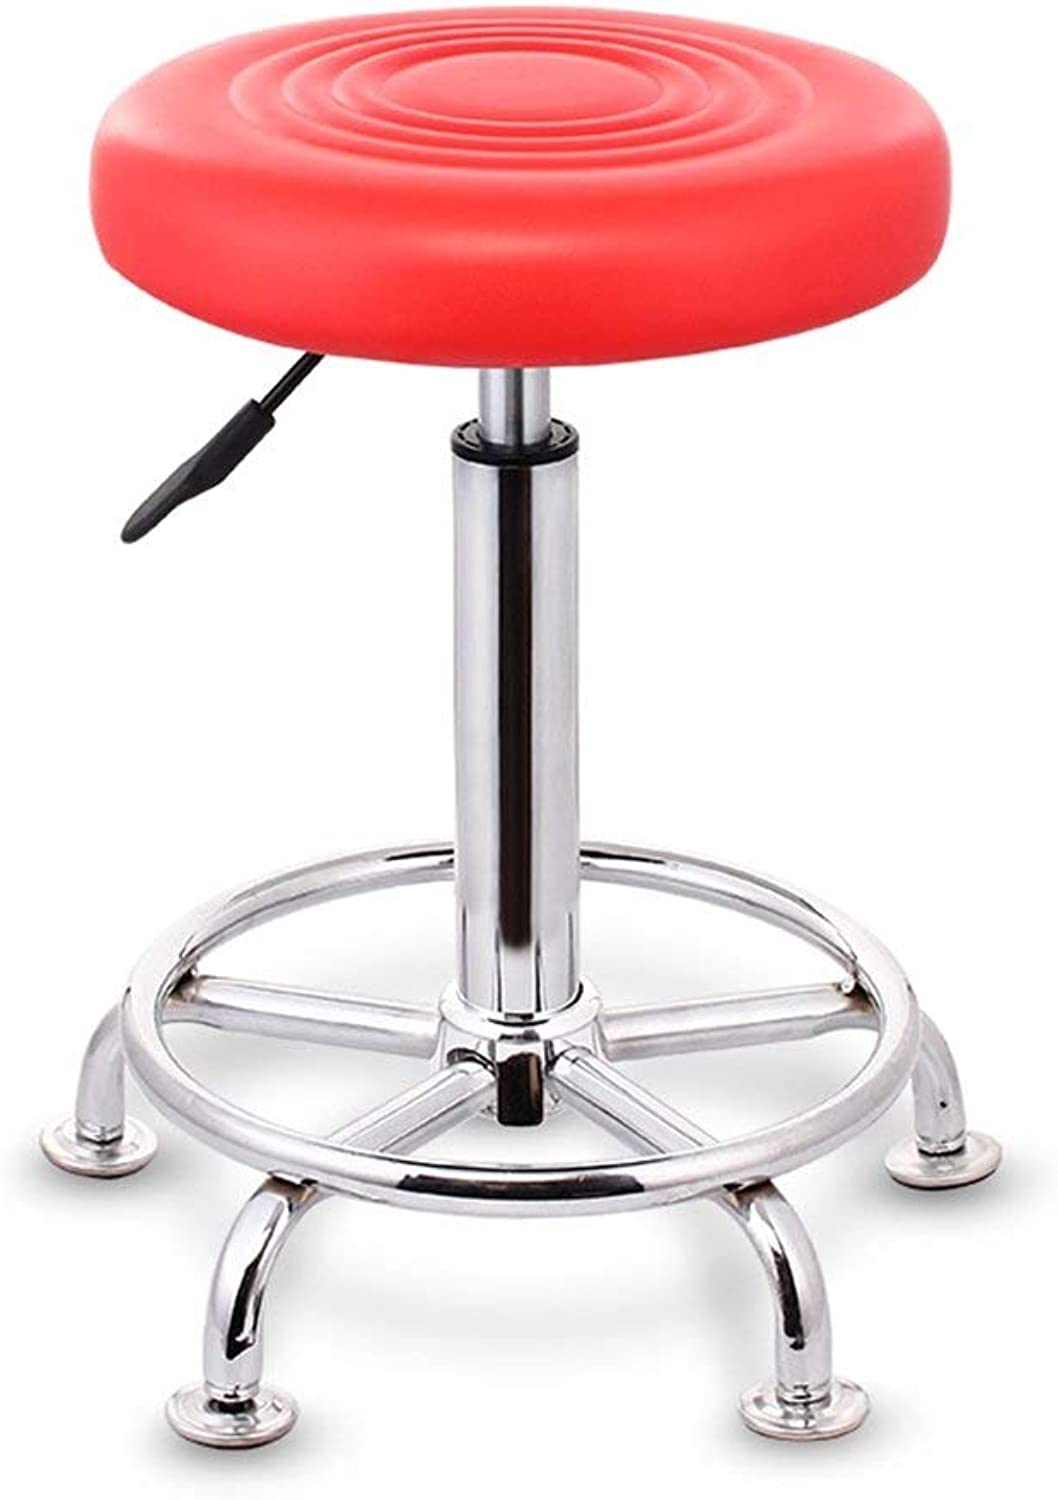 MMAXZ Metal bar Stool for Leather bar Chair, Kitchen Chair Breakfast, 1 Piece,Metal (color   Red)